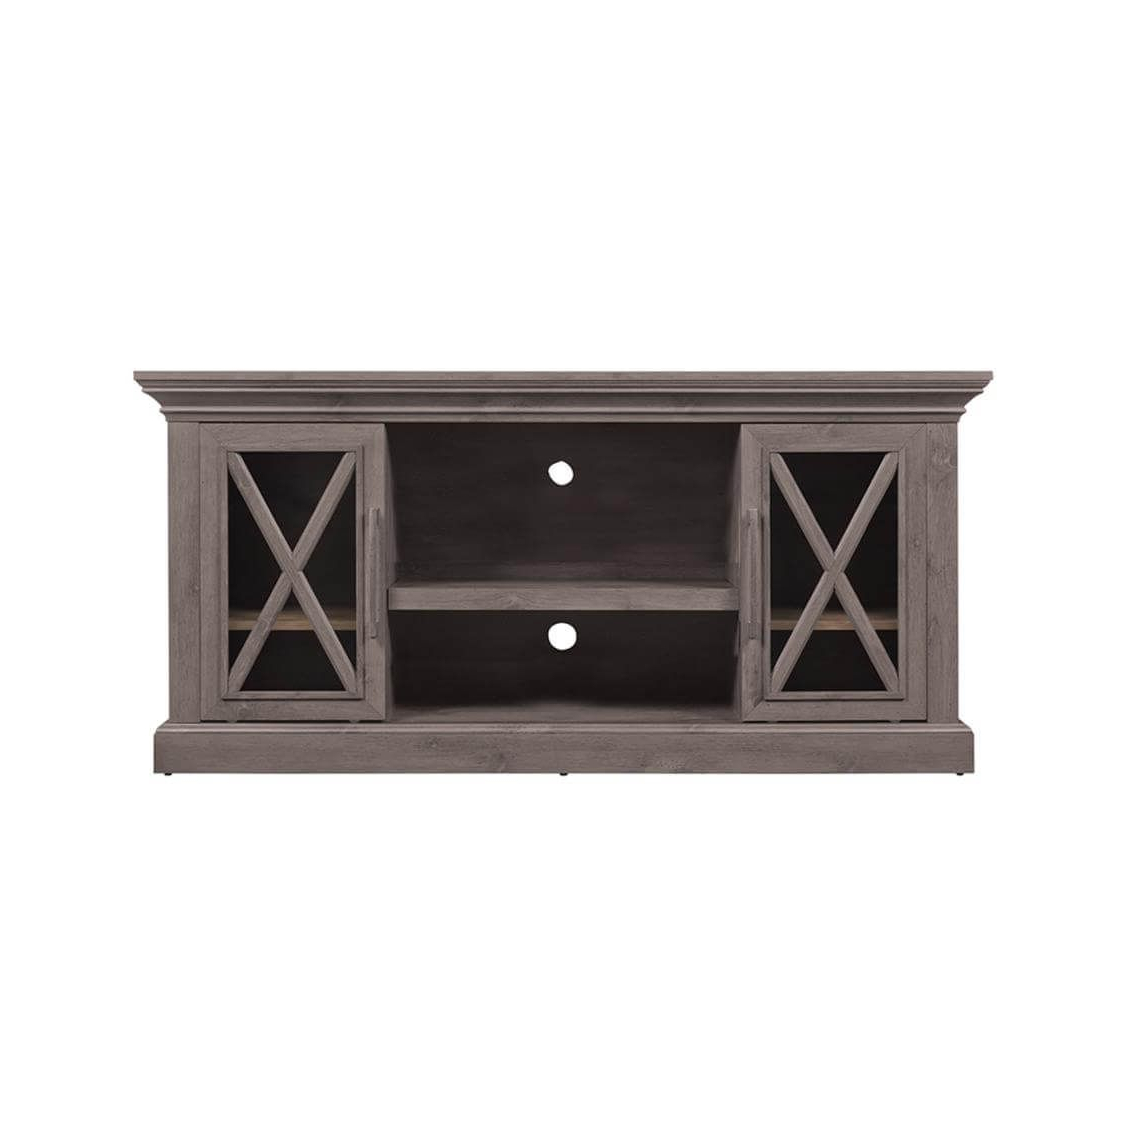 34 Enhance Your Living Space With Amazing Lowes Fireplace Tv Stand Within Sinclair Grey 74 Inch Tv Stands (View 1 of 20)